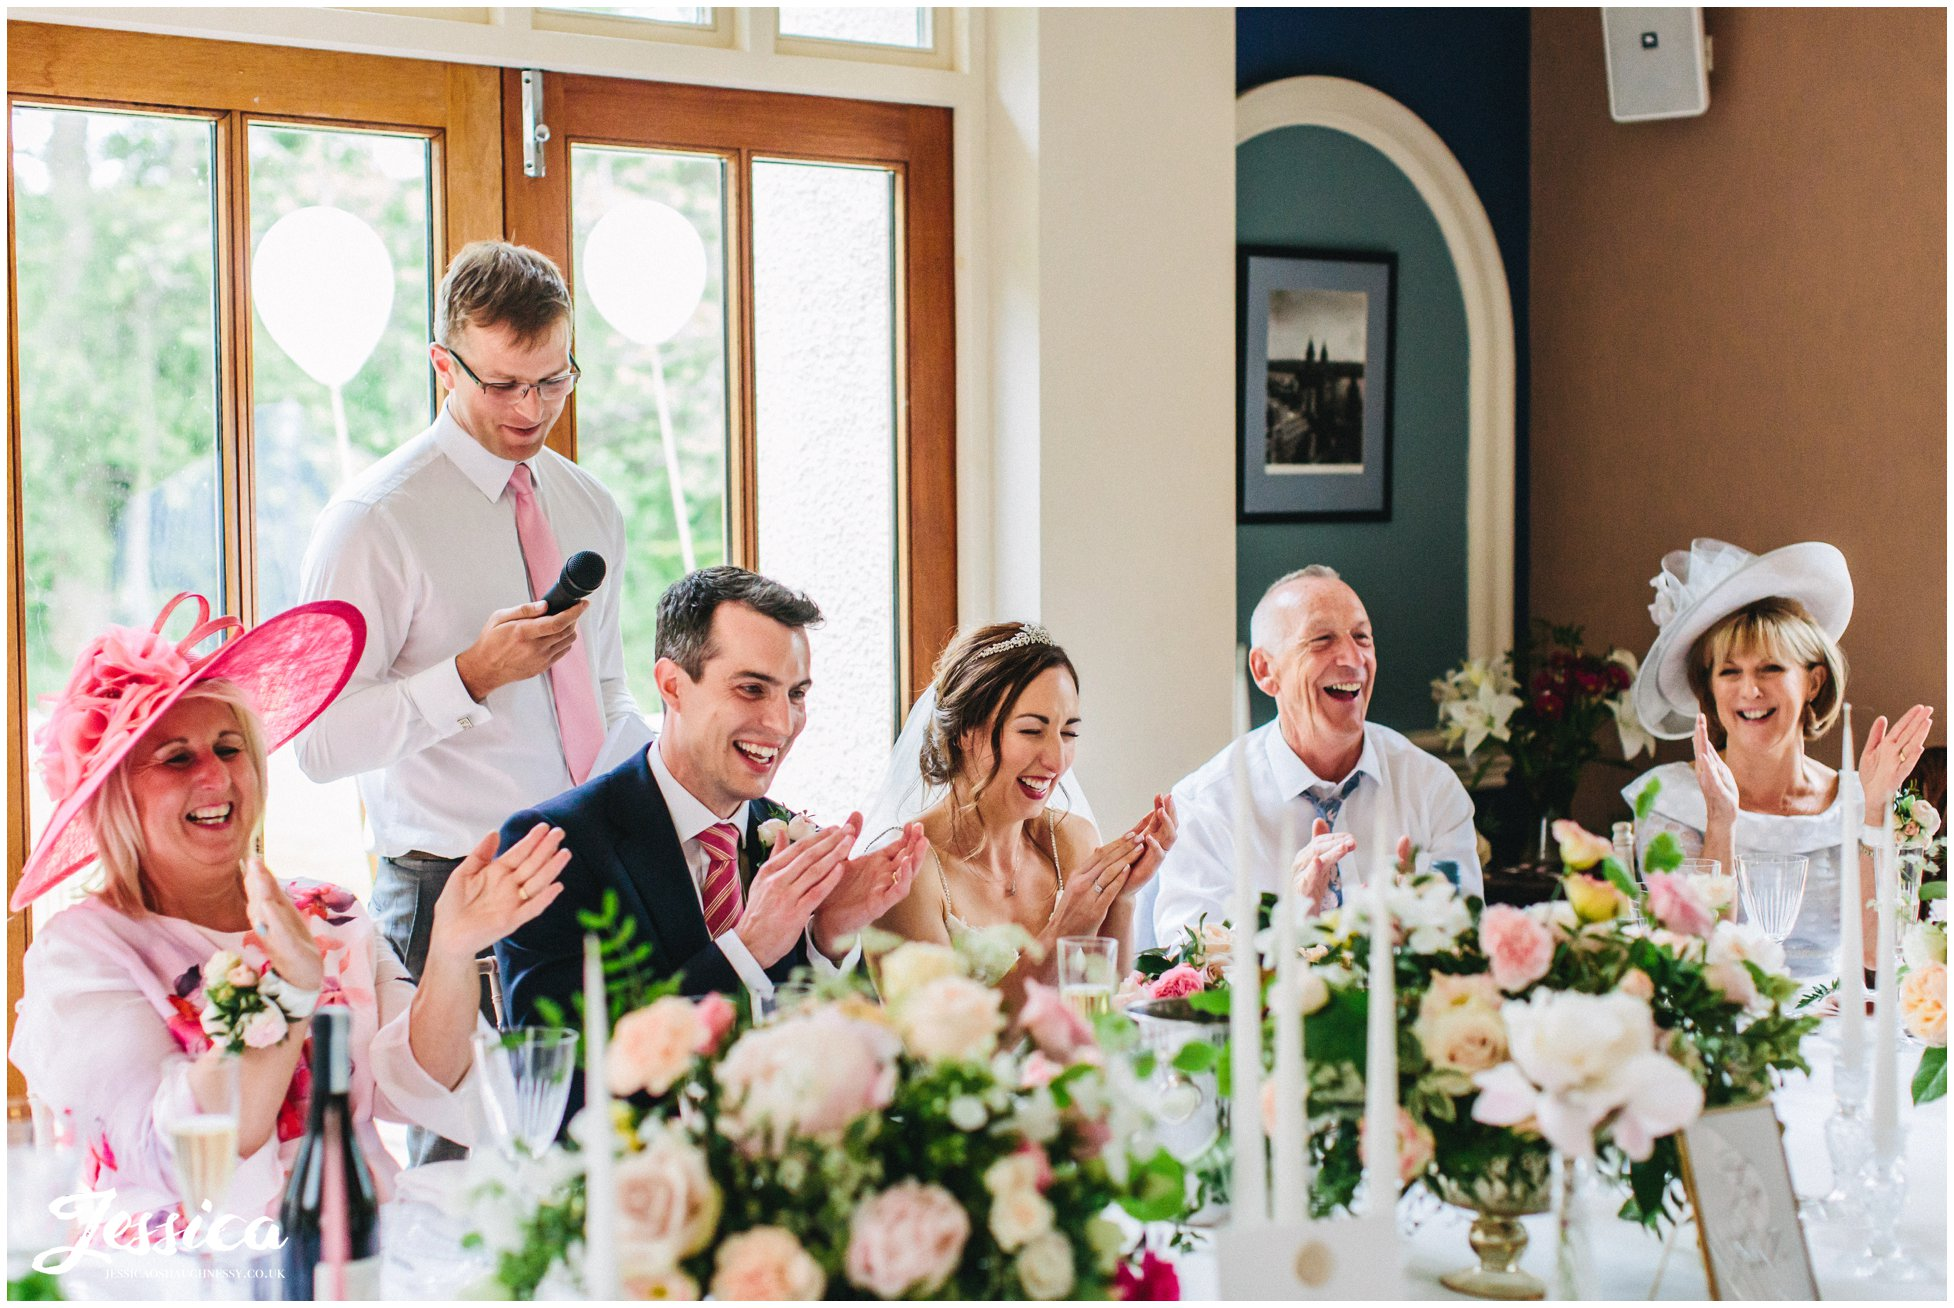 the top table applaud the best man after his gives his speech